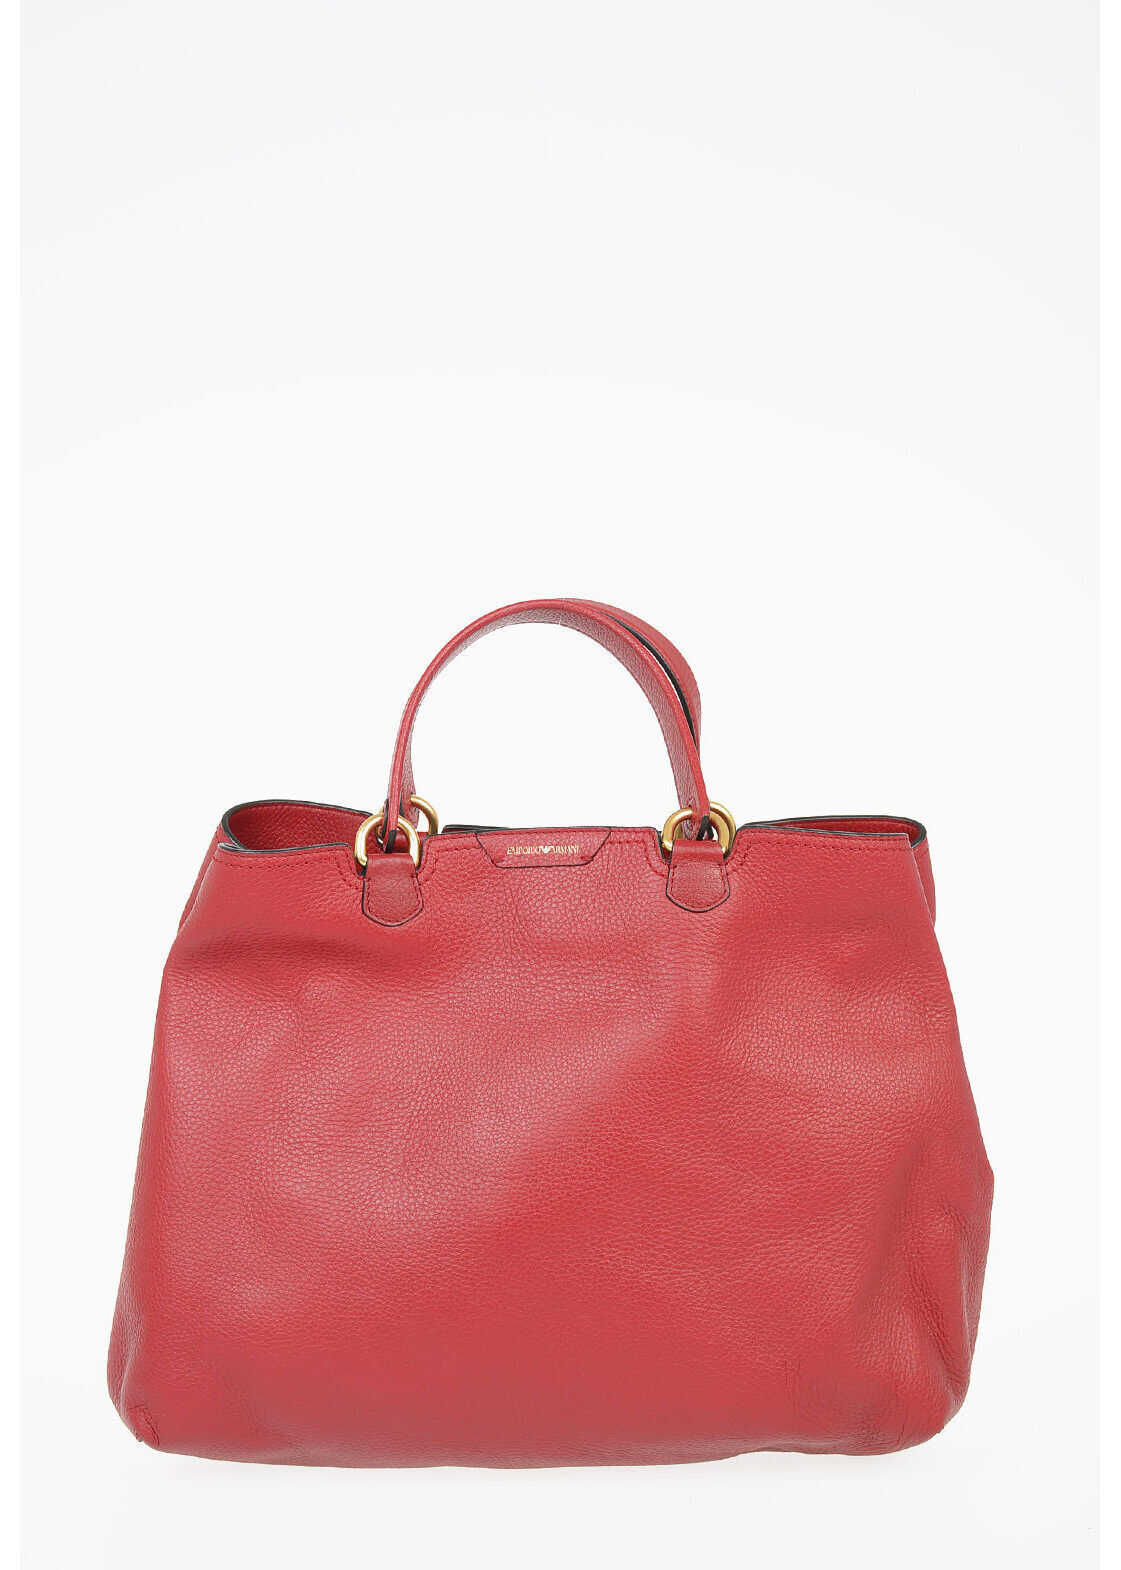 Armani EMPORIO Leather Shopping Bag RED